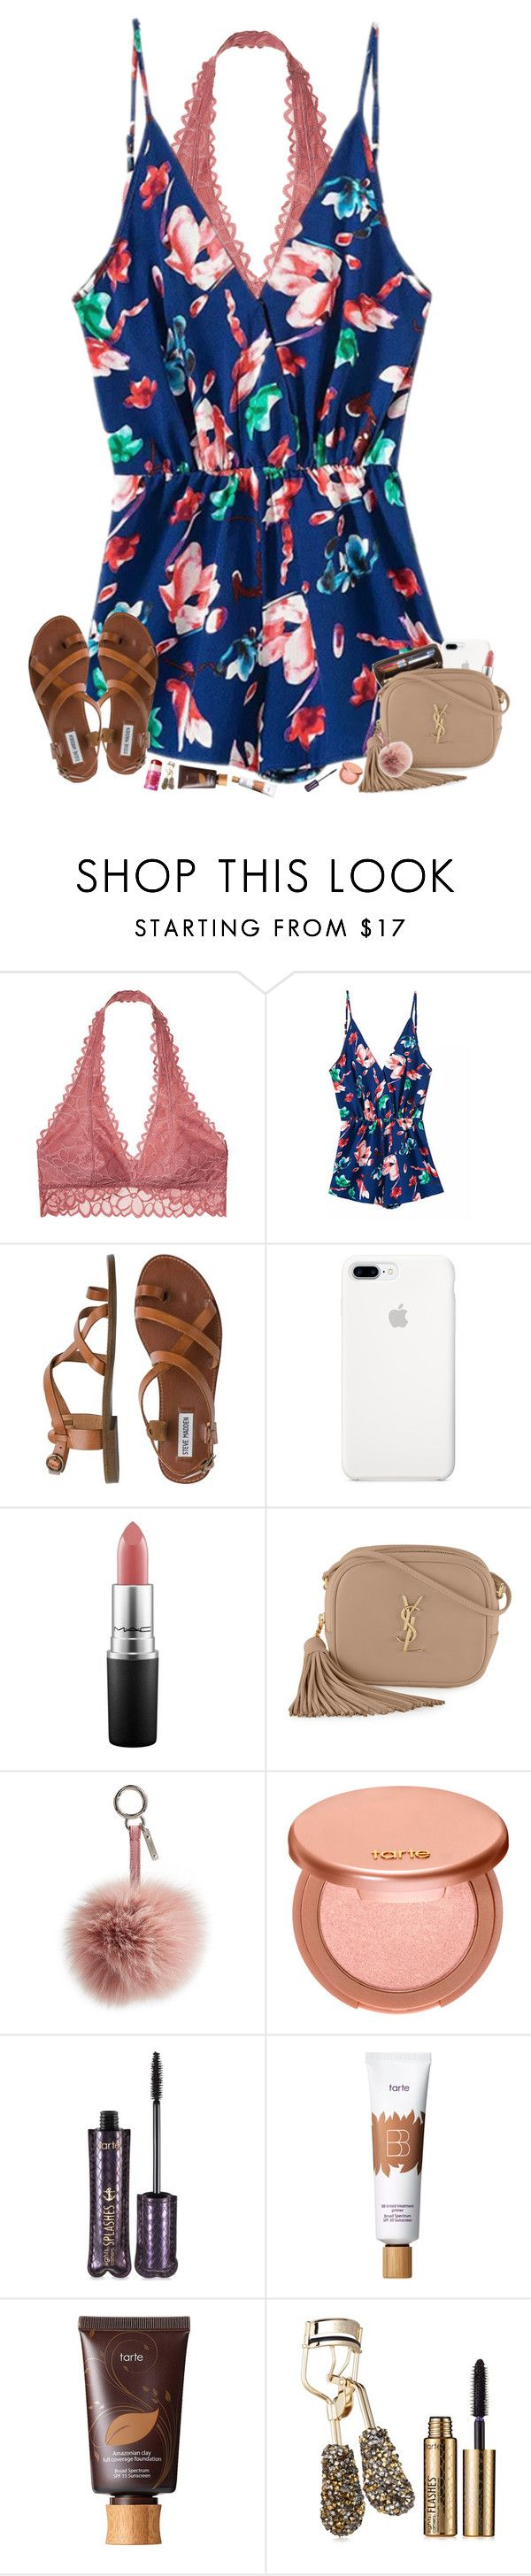 """summer set but oh "" by hopemarlee ❤ liked on Polyvore featuring Victoria's Secret, Steve Madden, Louis Vuitton, MAC Cosmetics, Yves Saint Laurent, Fendi, tarte and hmsloves"